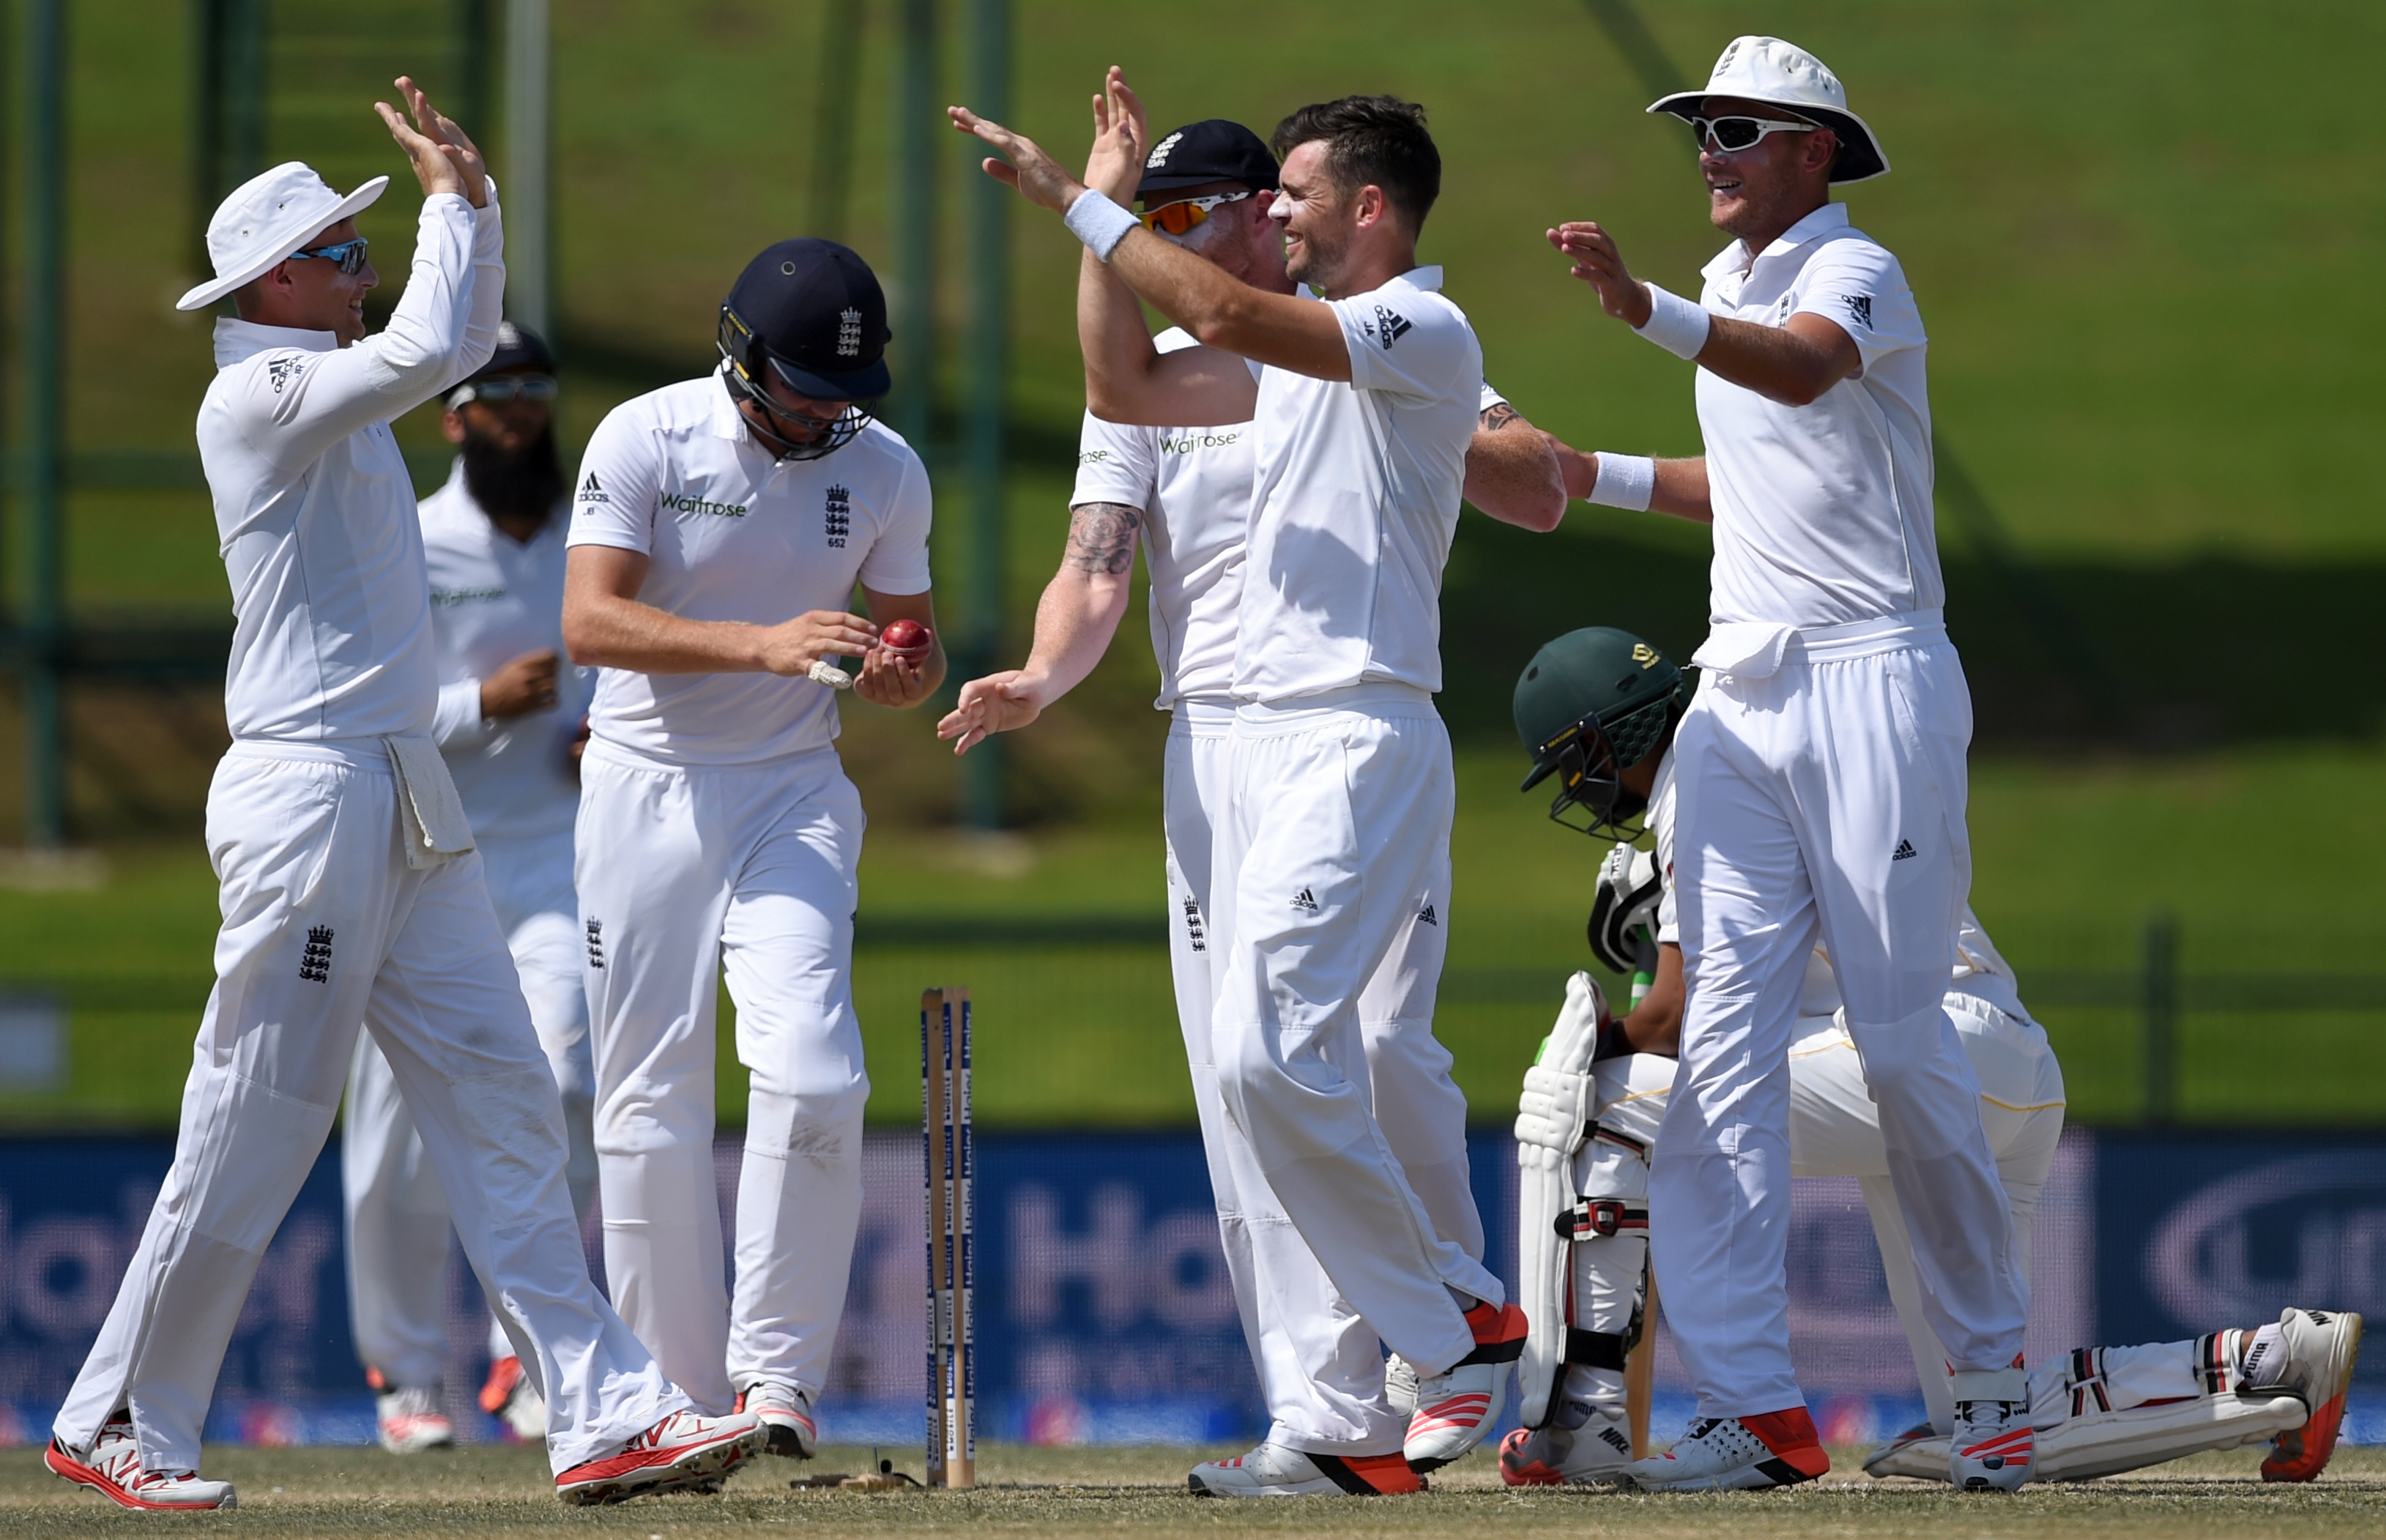 England's James Anderson, centre, and teammates celebrate after Pakistan's Shan Masood dismissal in second innings during the final day of first test match between Pakistan vs England at Zayed Cricket Stadium in Abu Dhabi, United Arab Emirates, Saturday, Oct.17, 2015. (AP Photo/Hafsal Ahmed)